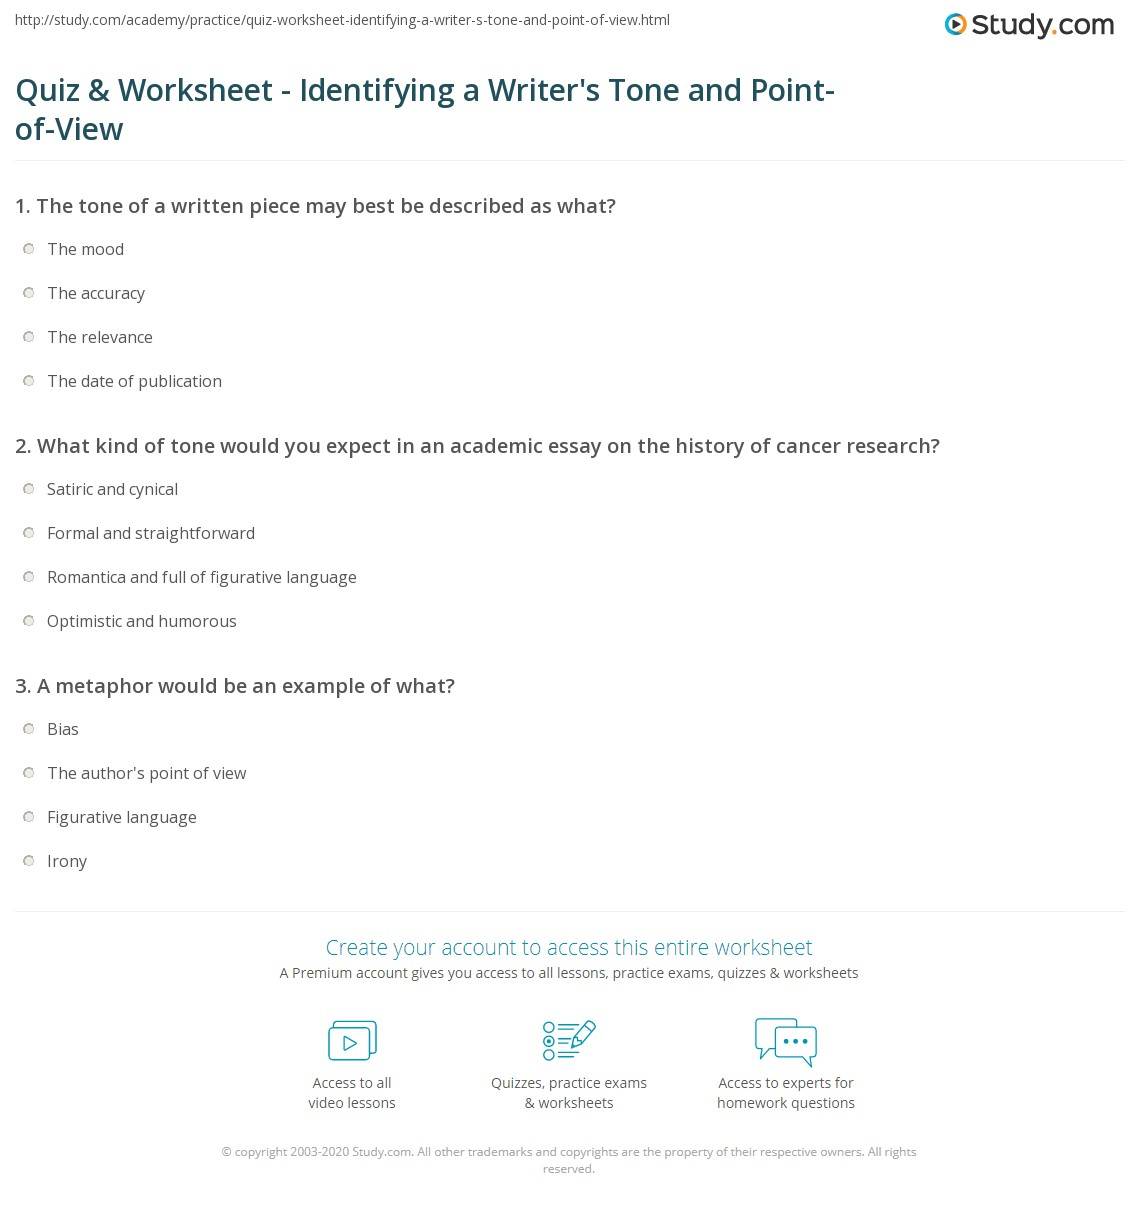 quiz worksheet identifying a writer s tone and point of view print how to determine the writer s tone and point of view worksheet